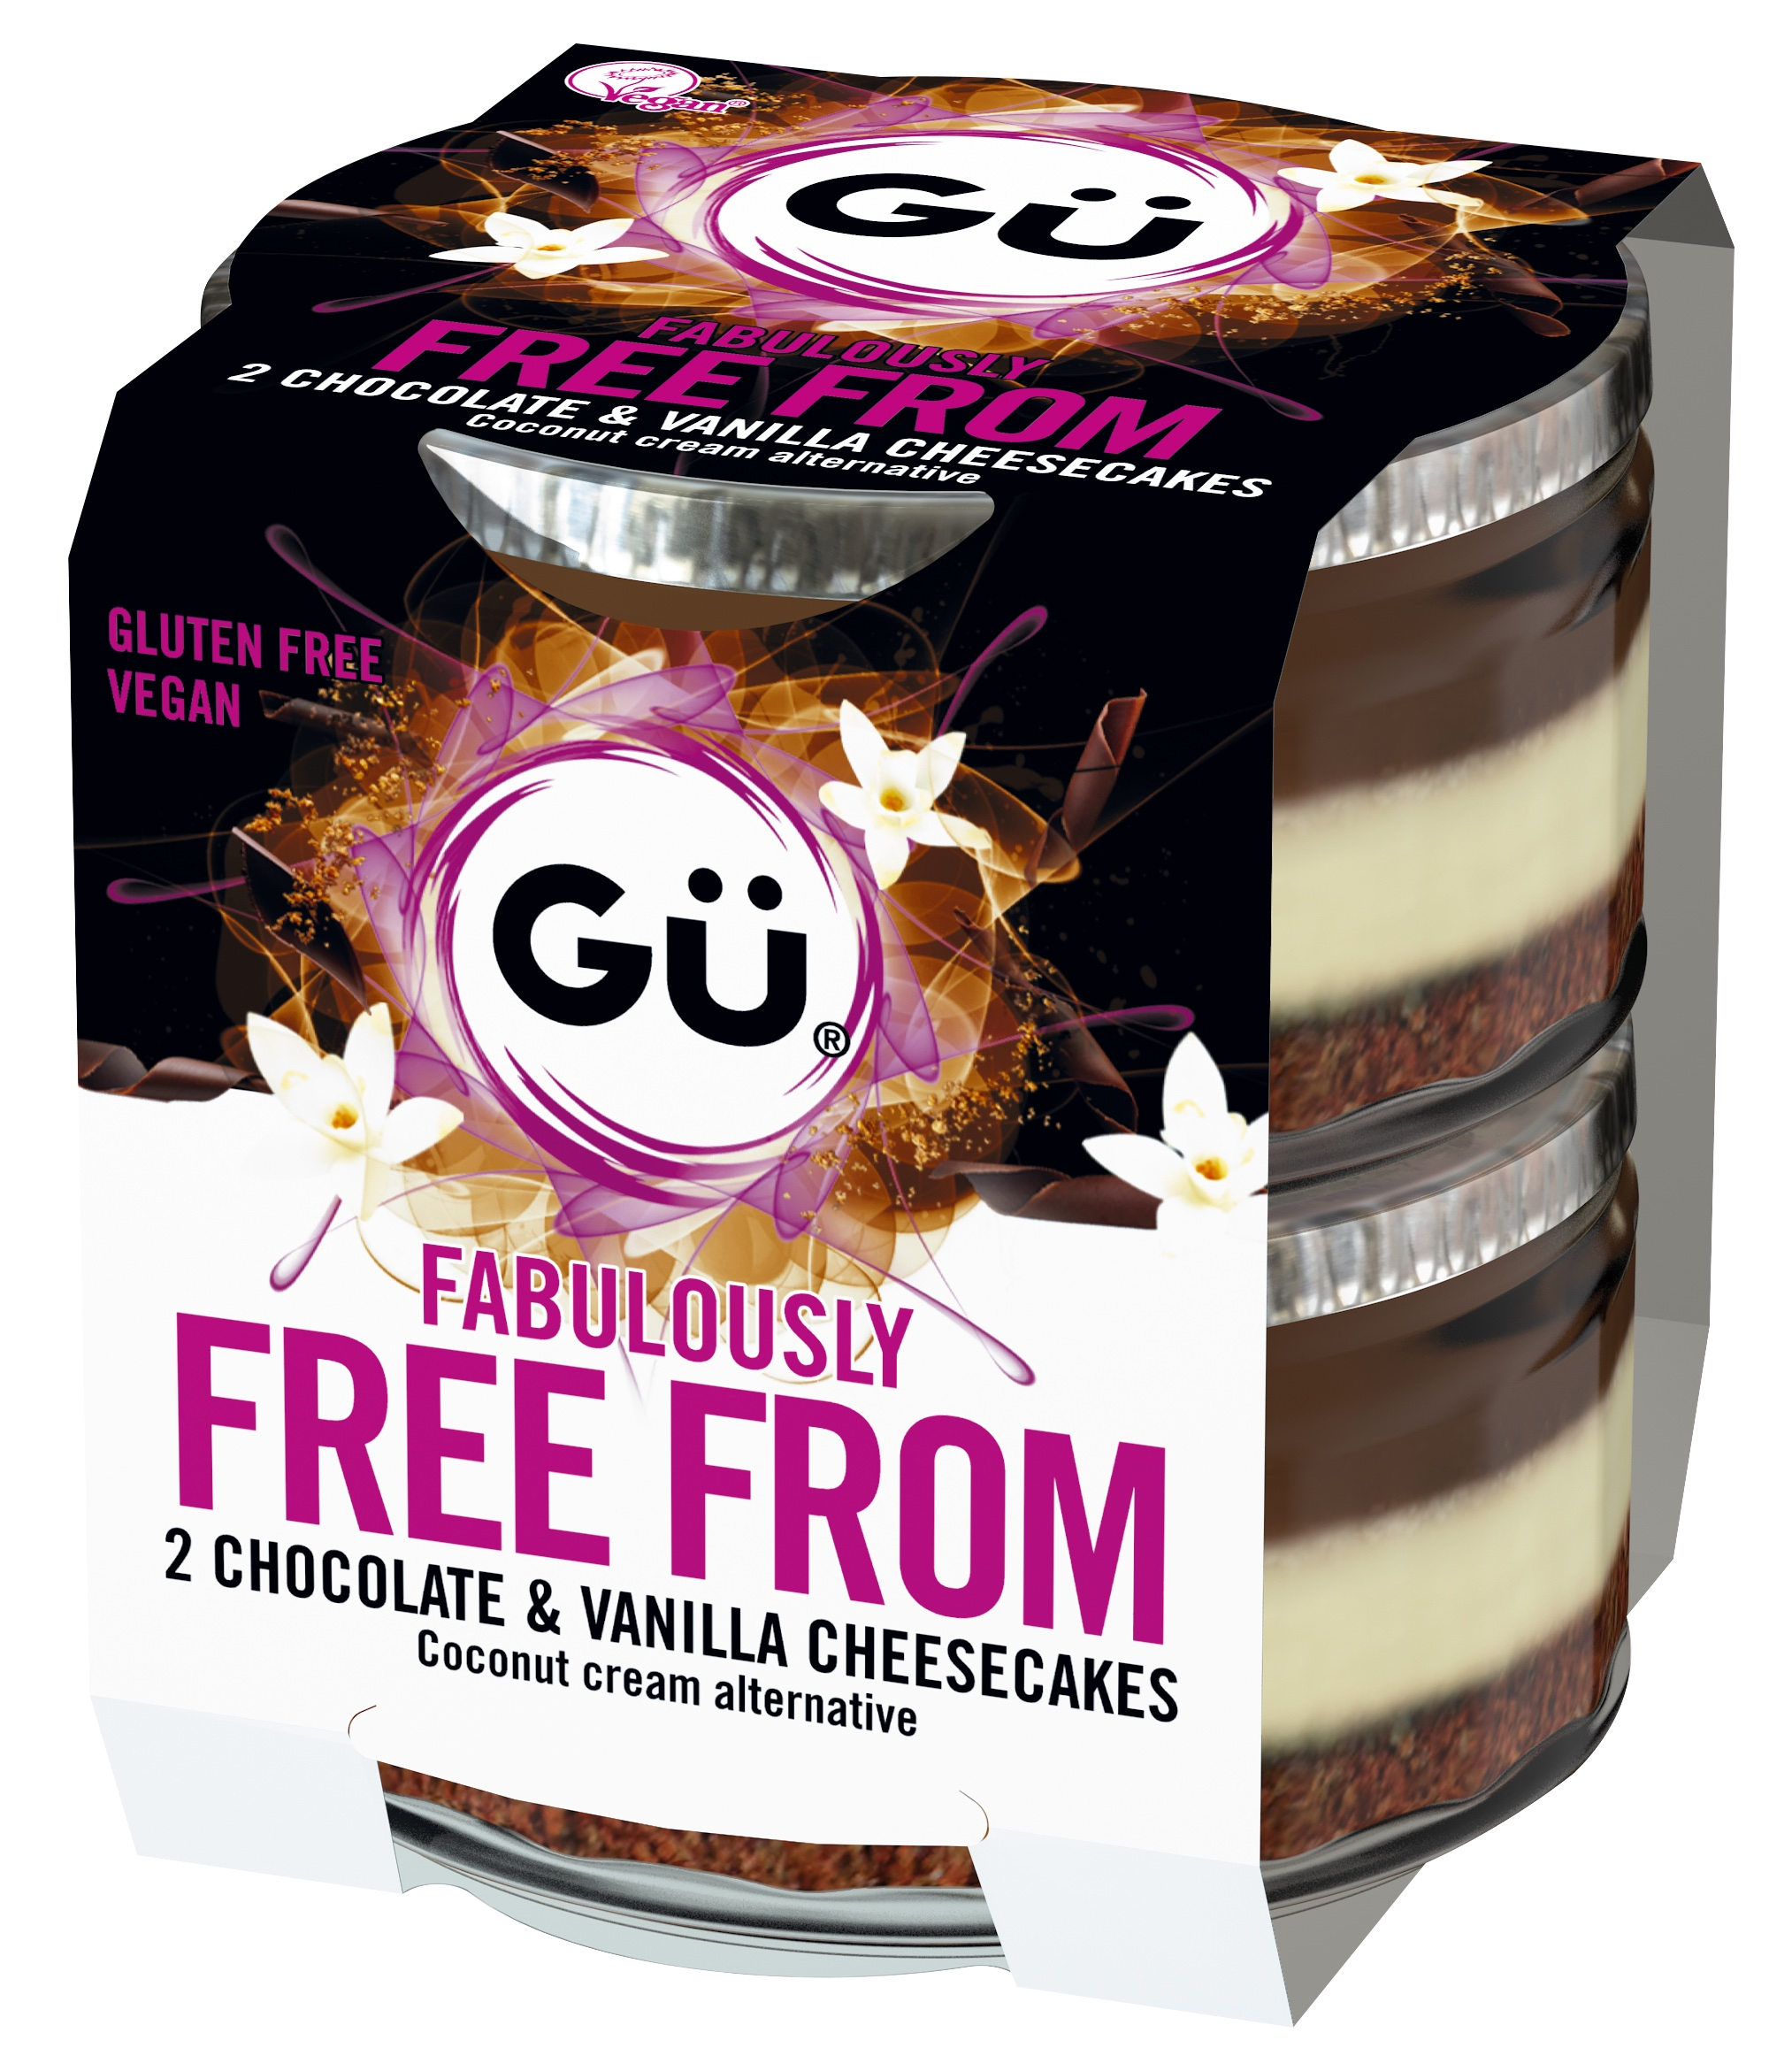 Gü have just launched four new gluten-free desserts!